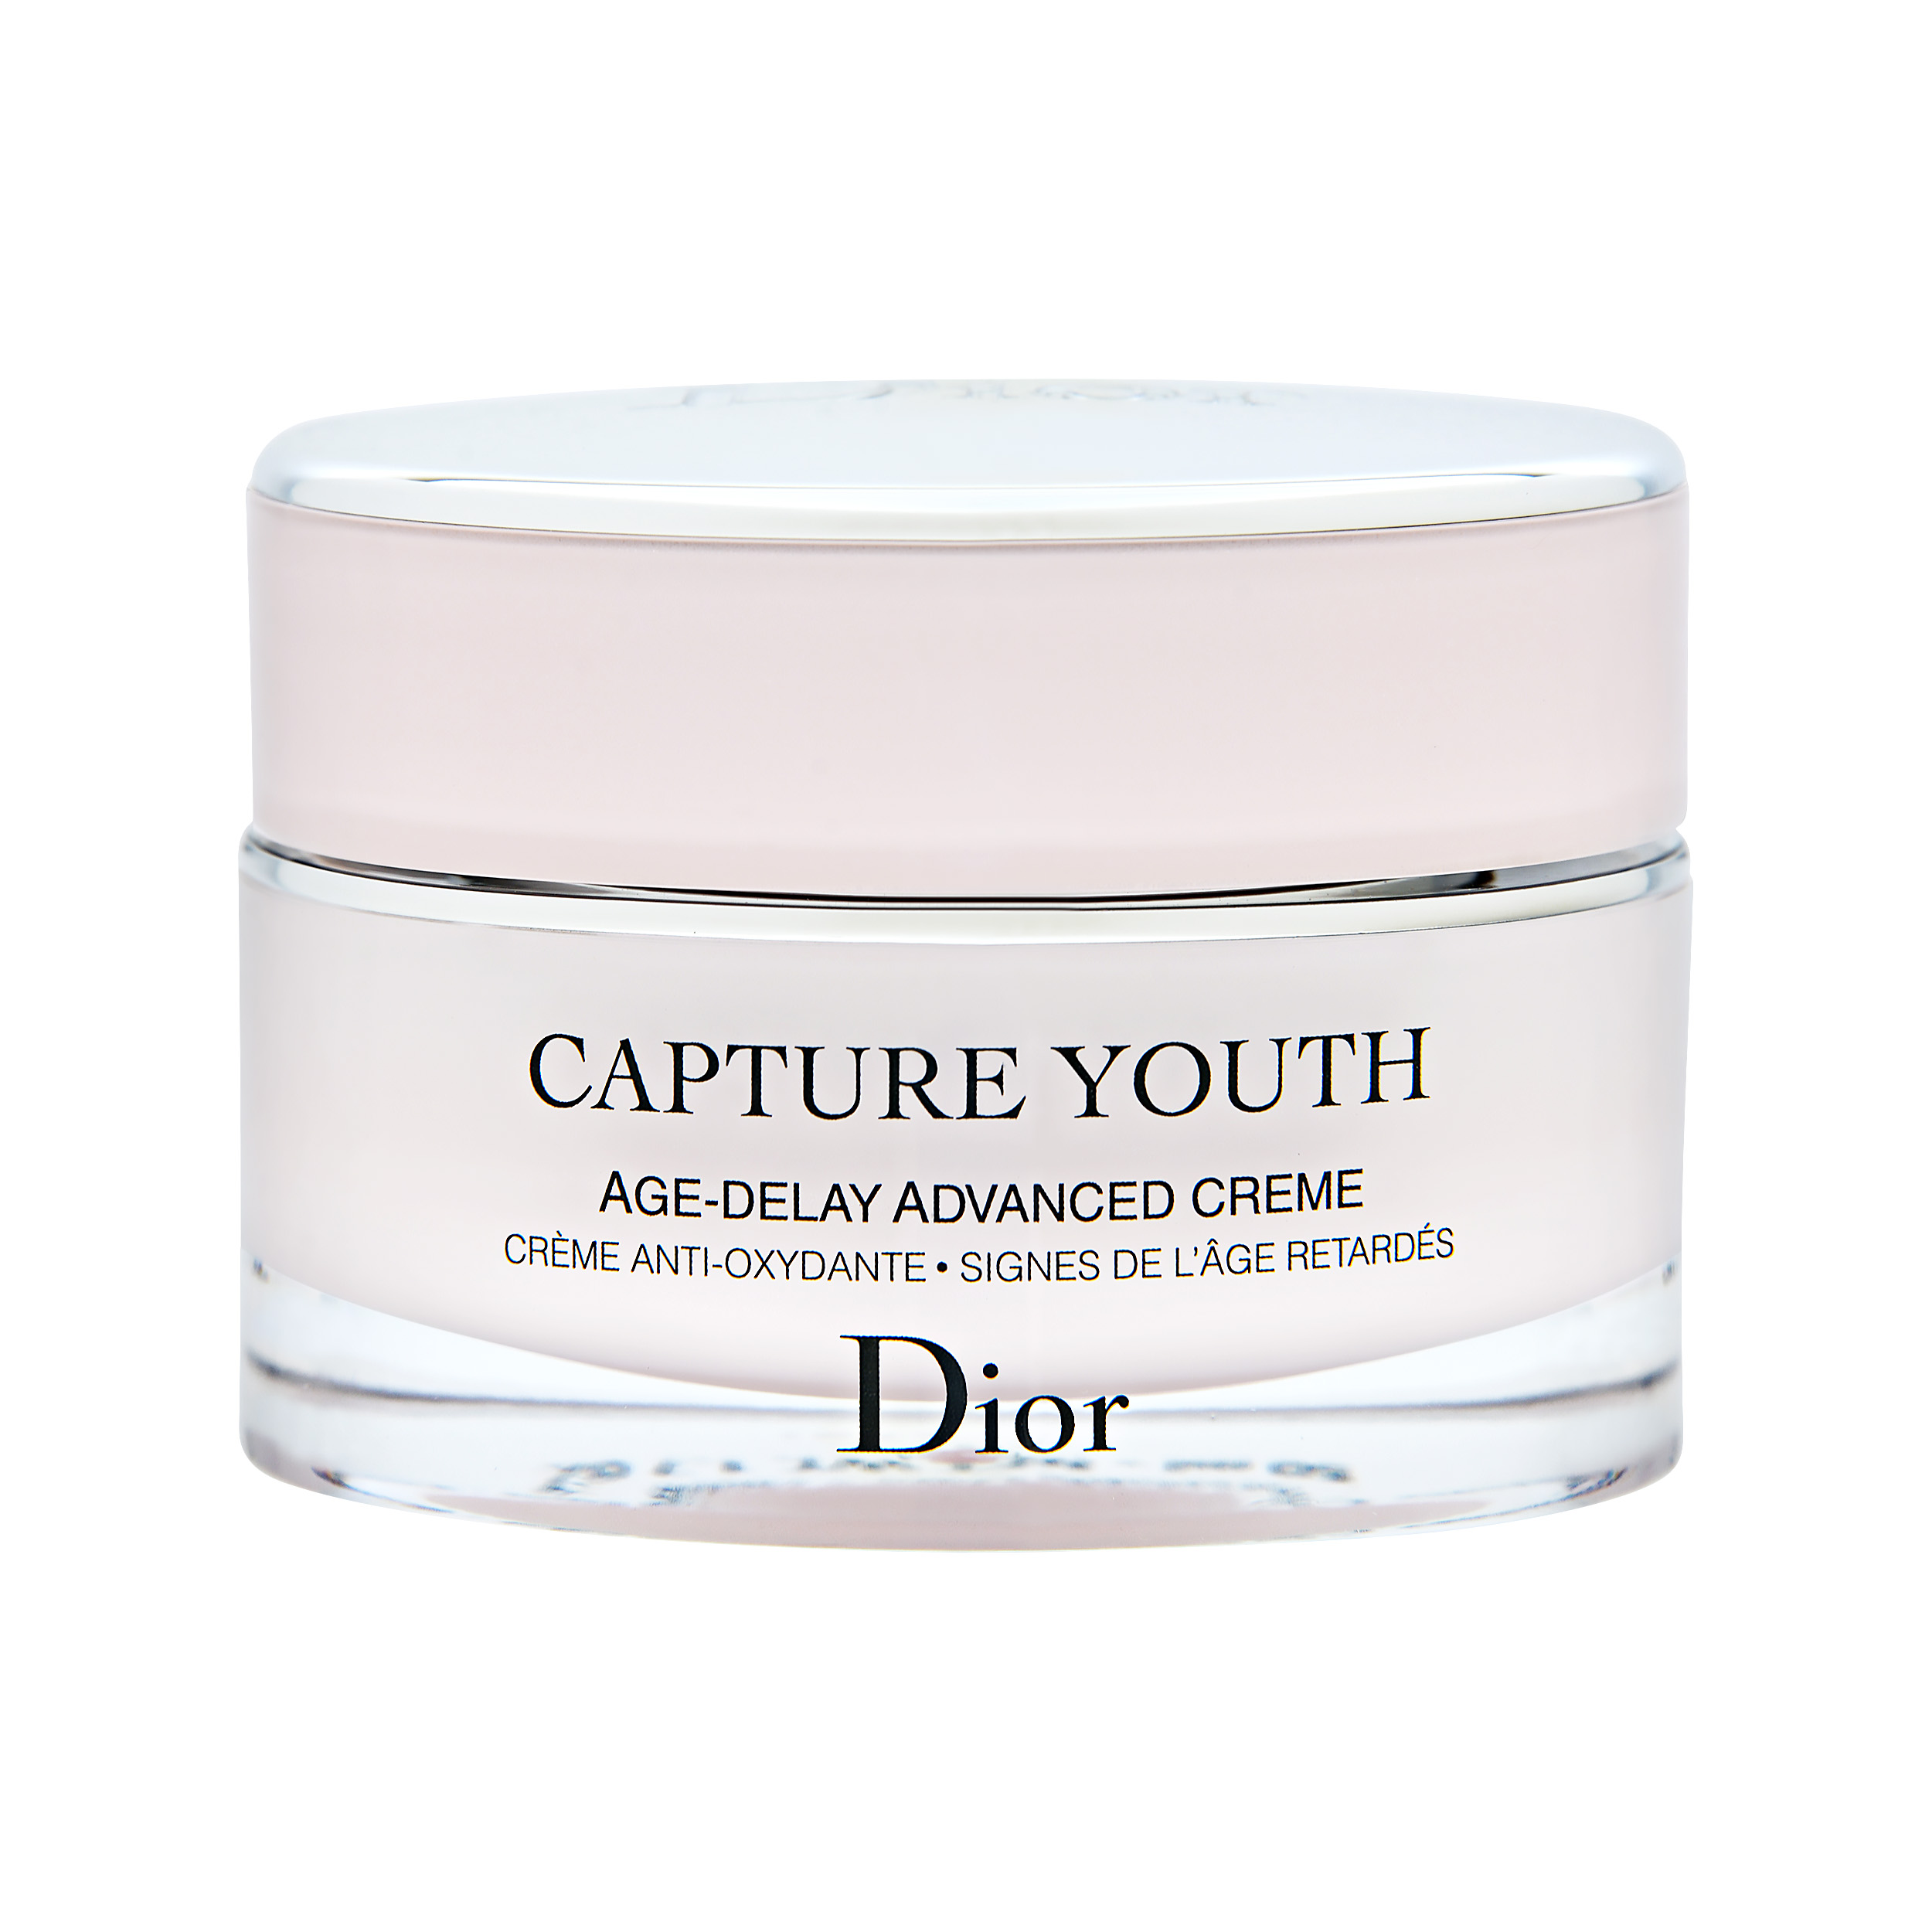 5d4152fa577 Details about Christian Dior Capture Youth Age-Delay Advanced Creme 1.7oz